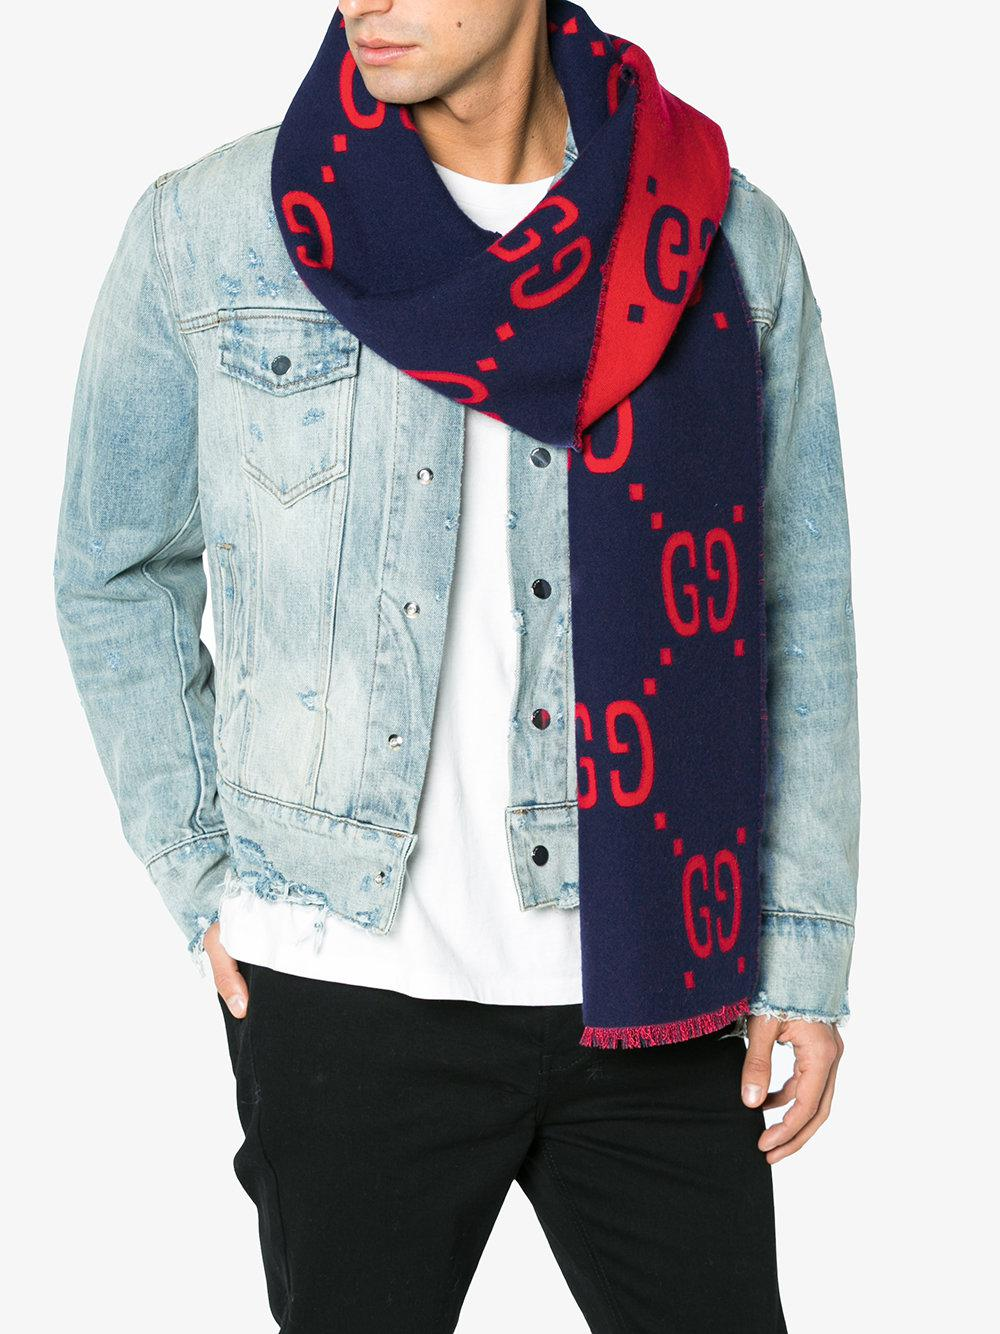 336746f0c11a Gucci Gg Supreme Print Scarf in Blue for Men - Lyst